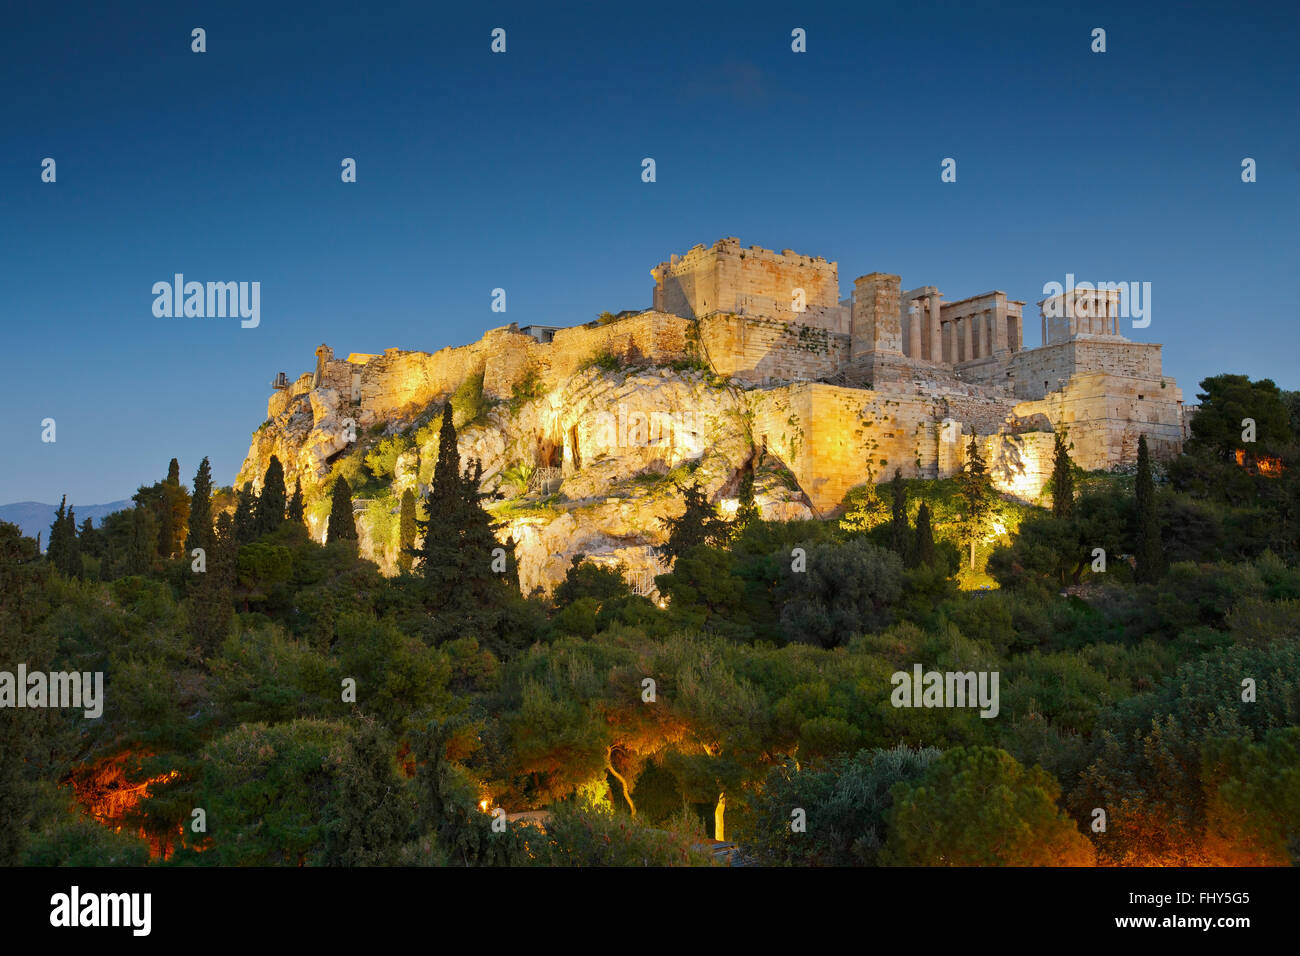 View of Acropolis from Areopagus hill. - Stock Image